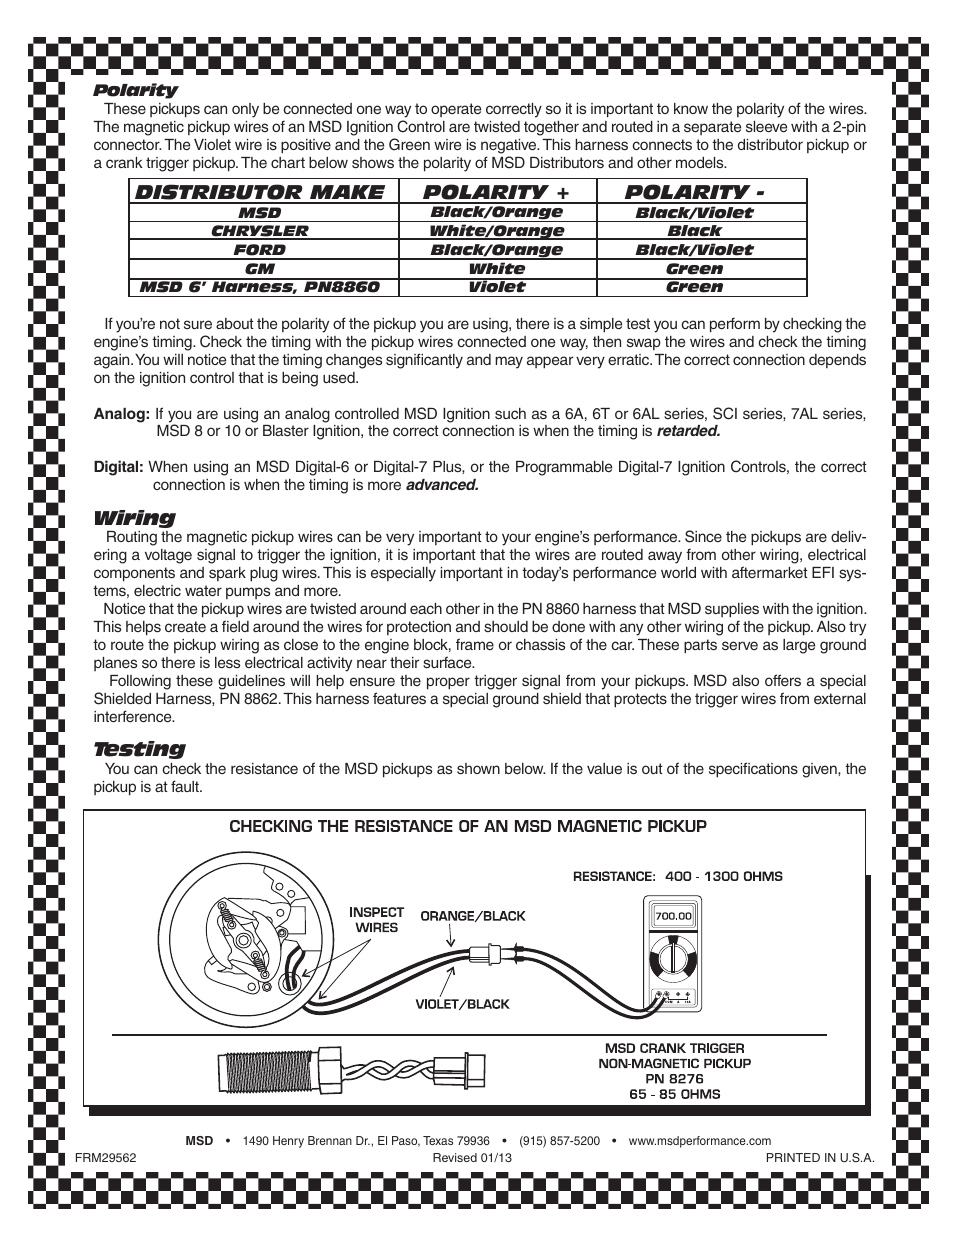 billet distributor tech bulletin user manual | page 2 / 2 | also for:  8566 oldsmobile v8 350-455 distributor tech bulletin, 8382 ford 302 dual  pickup